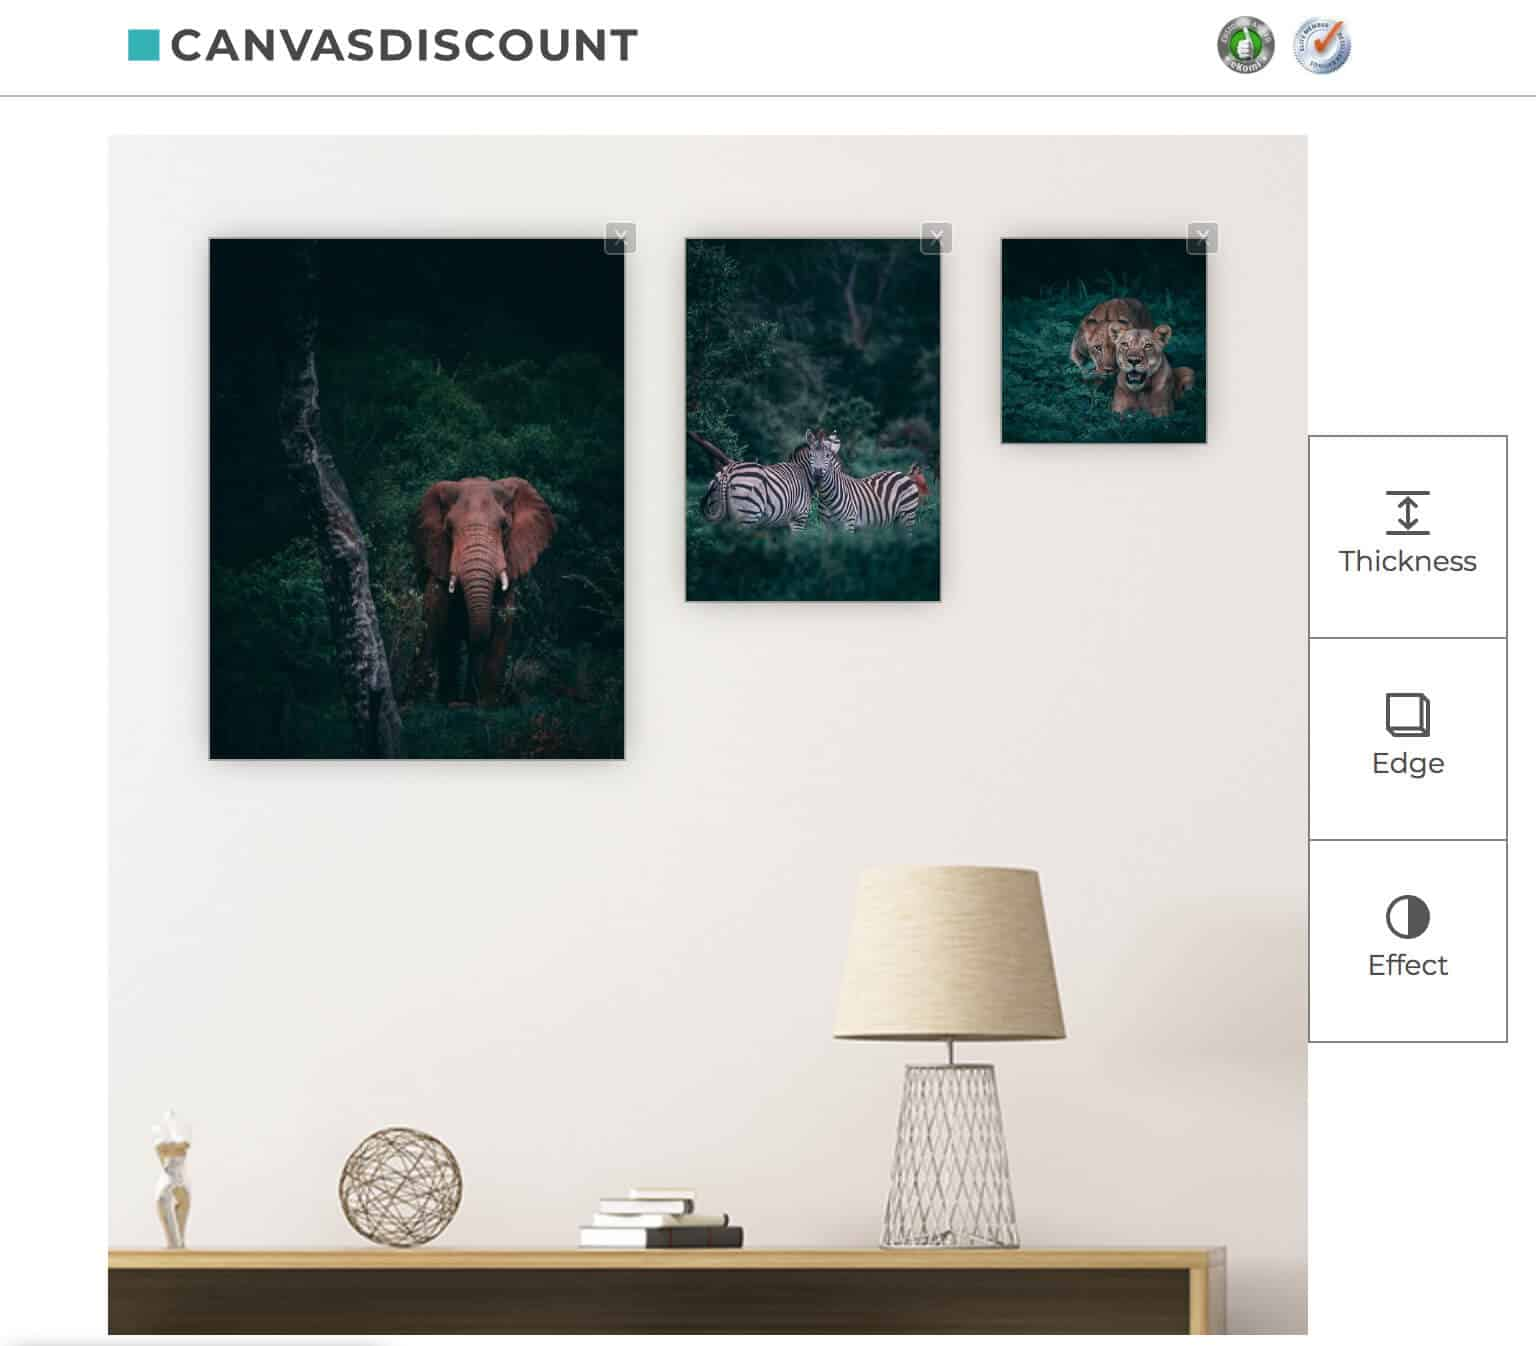 CanvasDiscount Canvas Prints with Photos from Unsplash